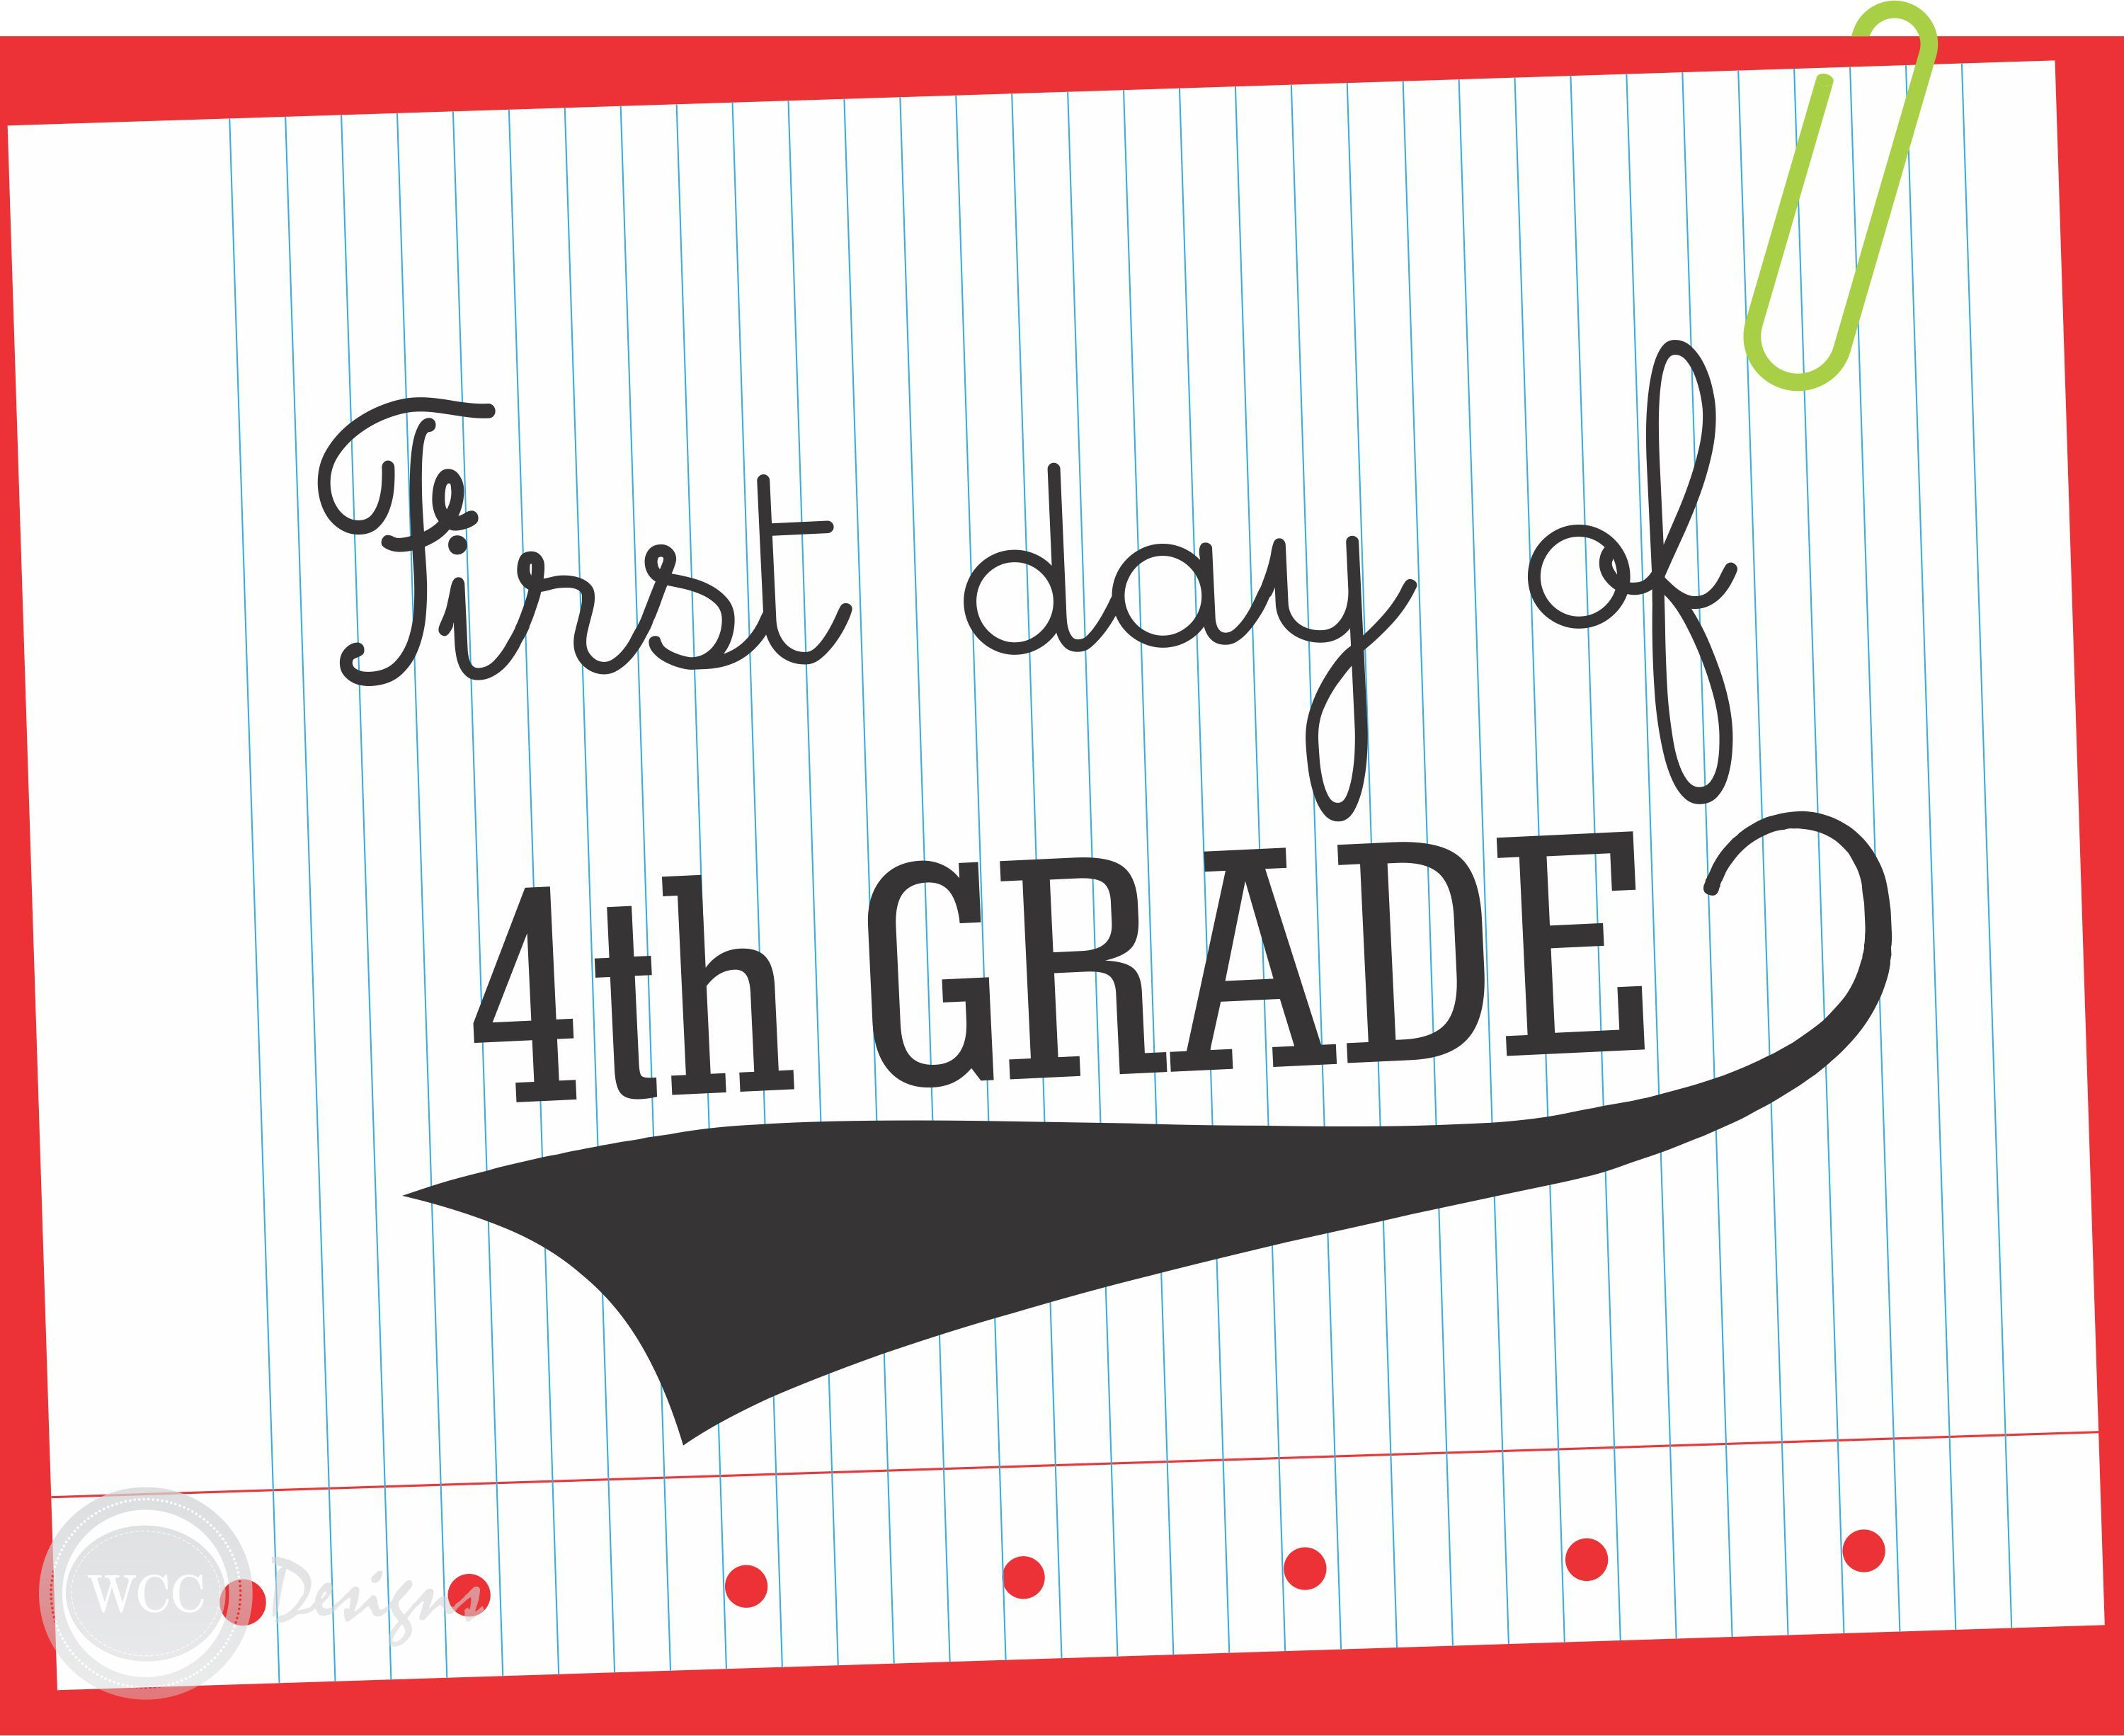 Free First Day Of School Printable Signs From Wcc Designs | Teacher - First Day Of Fourth Grade Free Printable